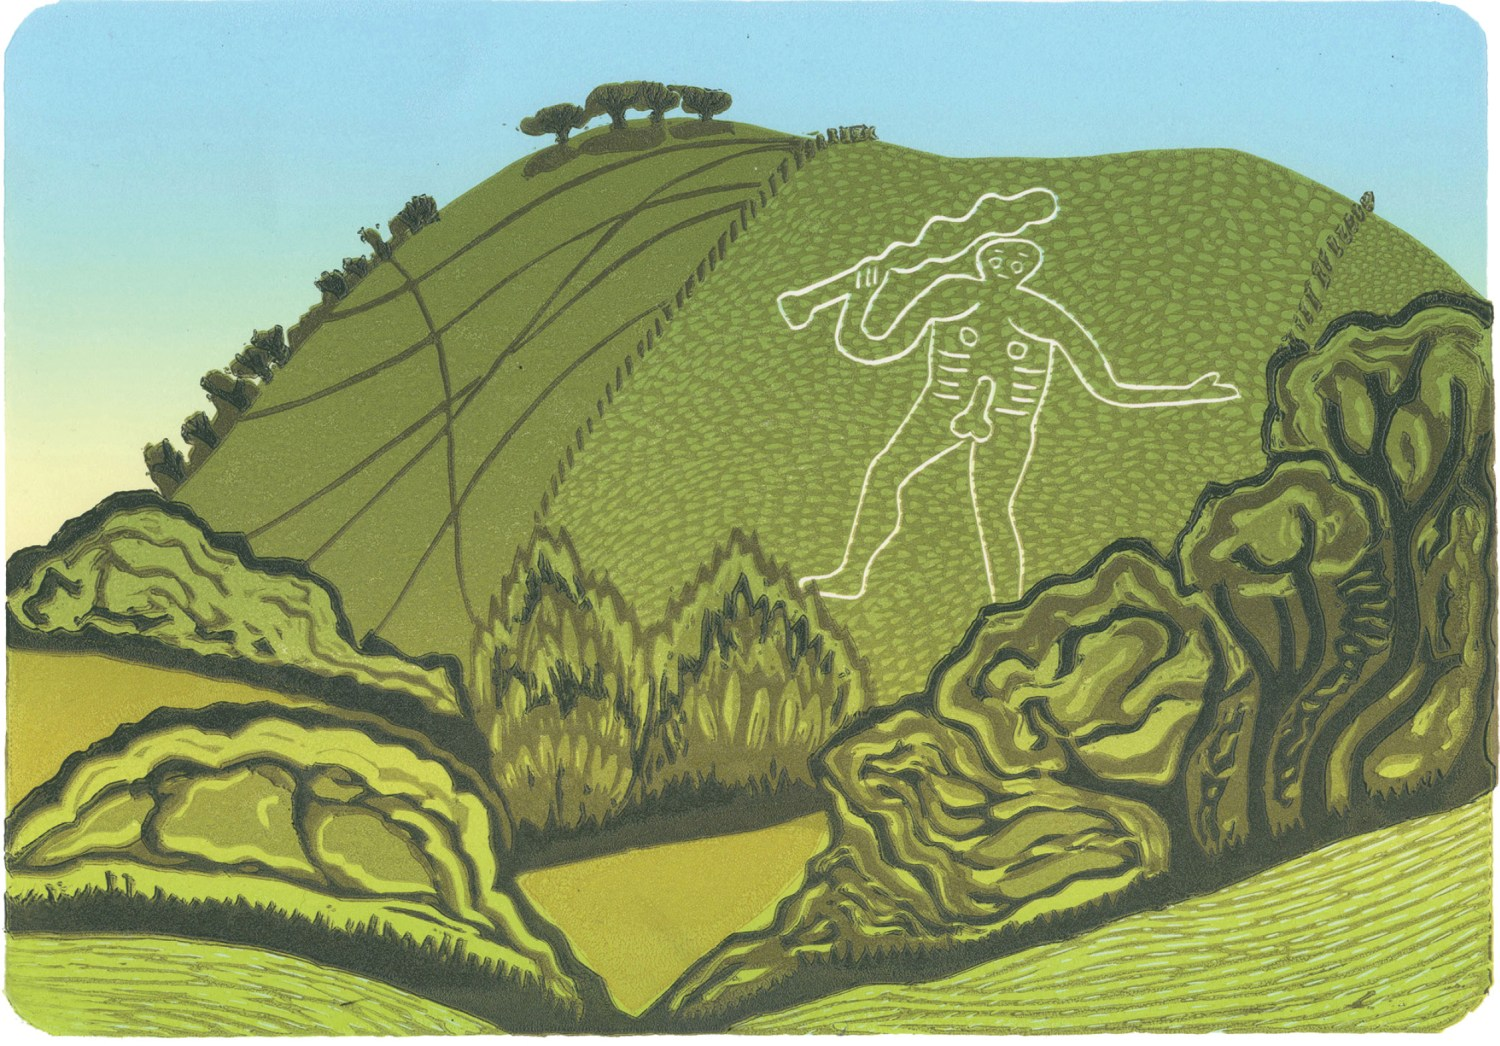 ABOVE Based on a sketch created on location after cycling to the site in 2015, this lino-cut by Katherine Anteney (https://katherineanteney.co.uk) depicts the immediately recognisable Cerne Abbas Giant.